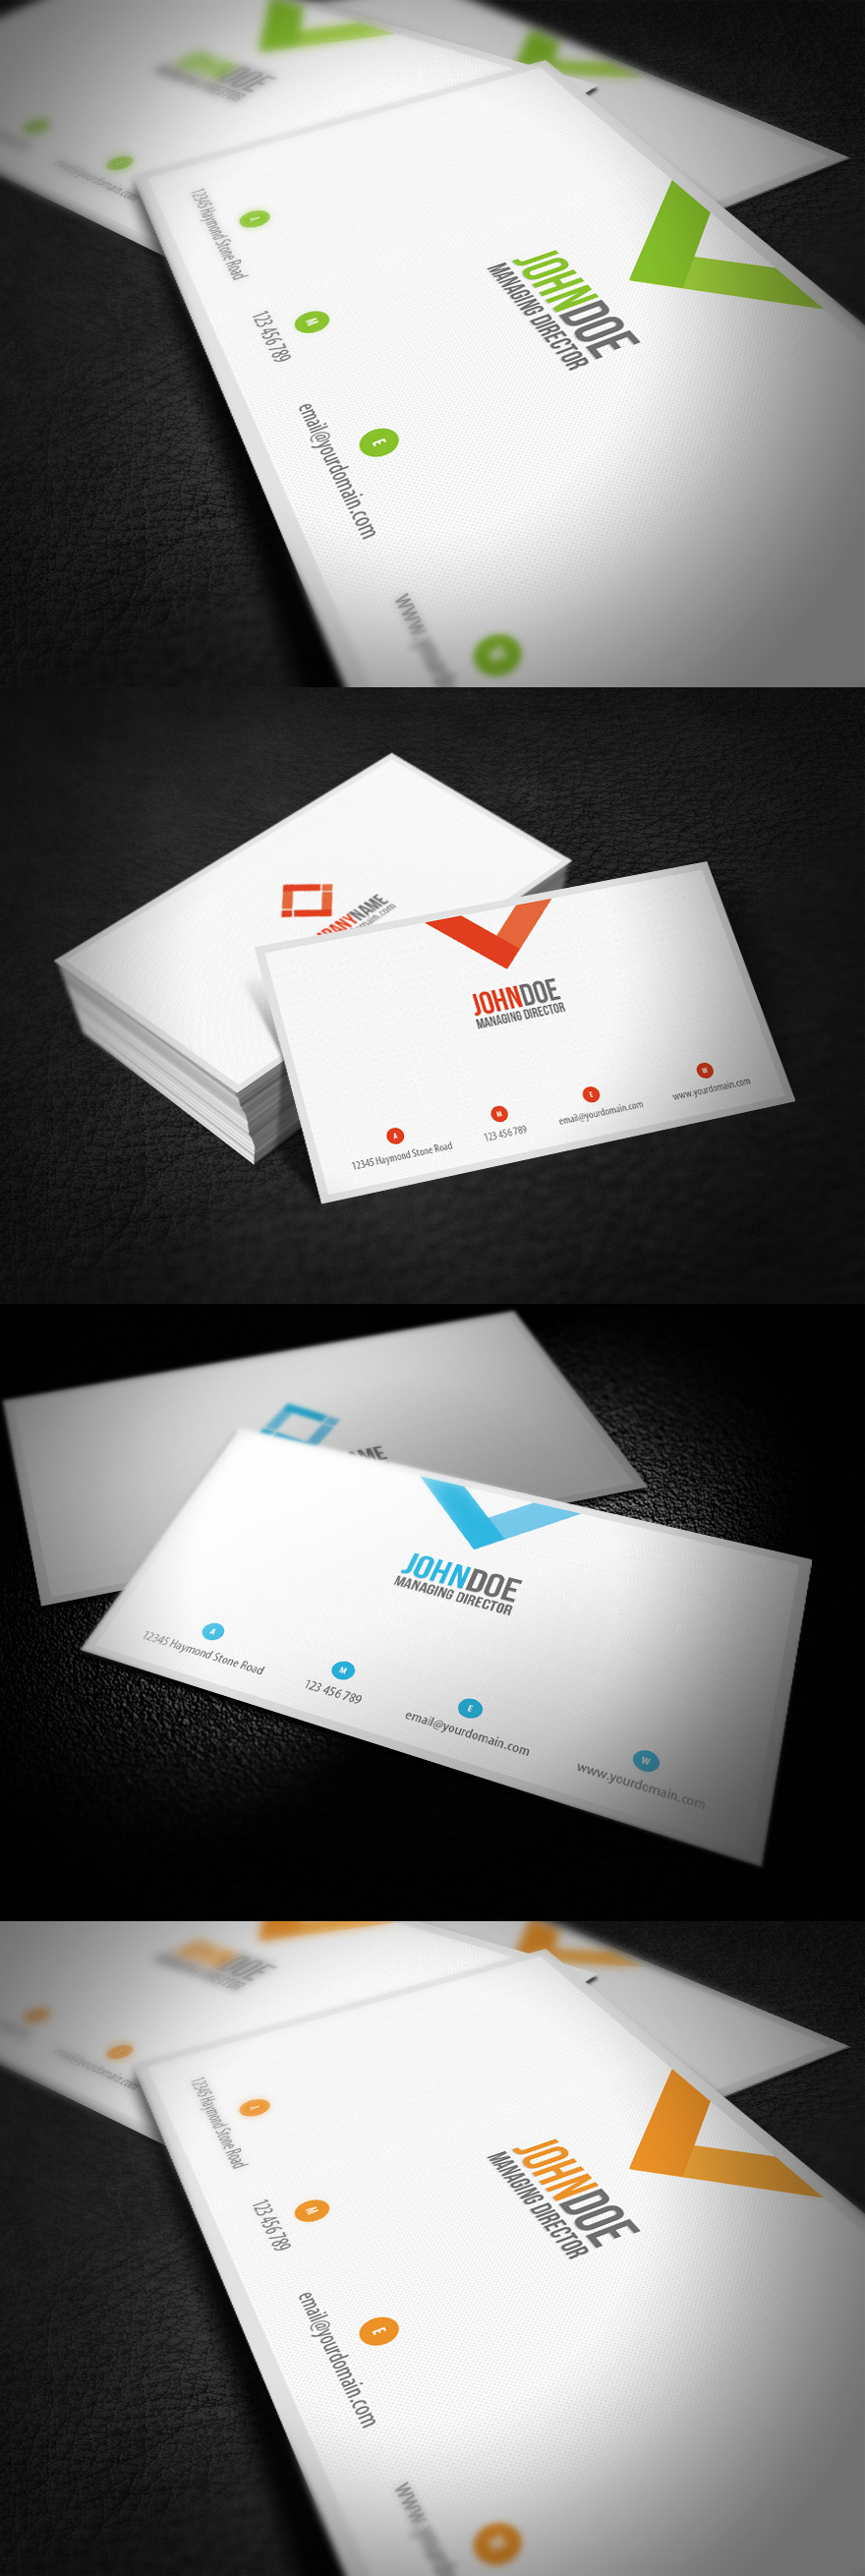 Original Business Card